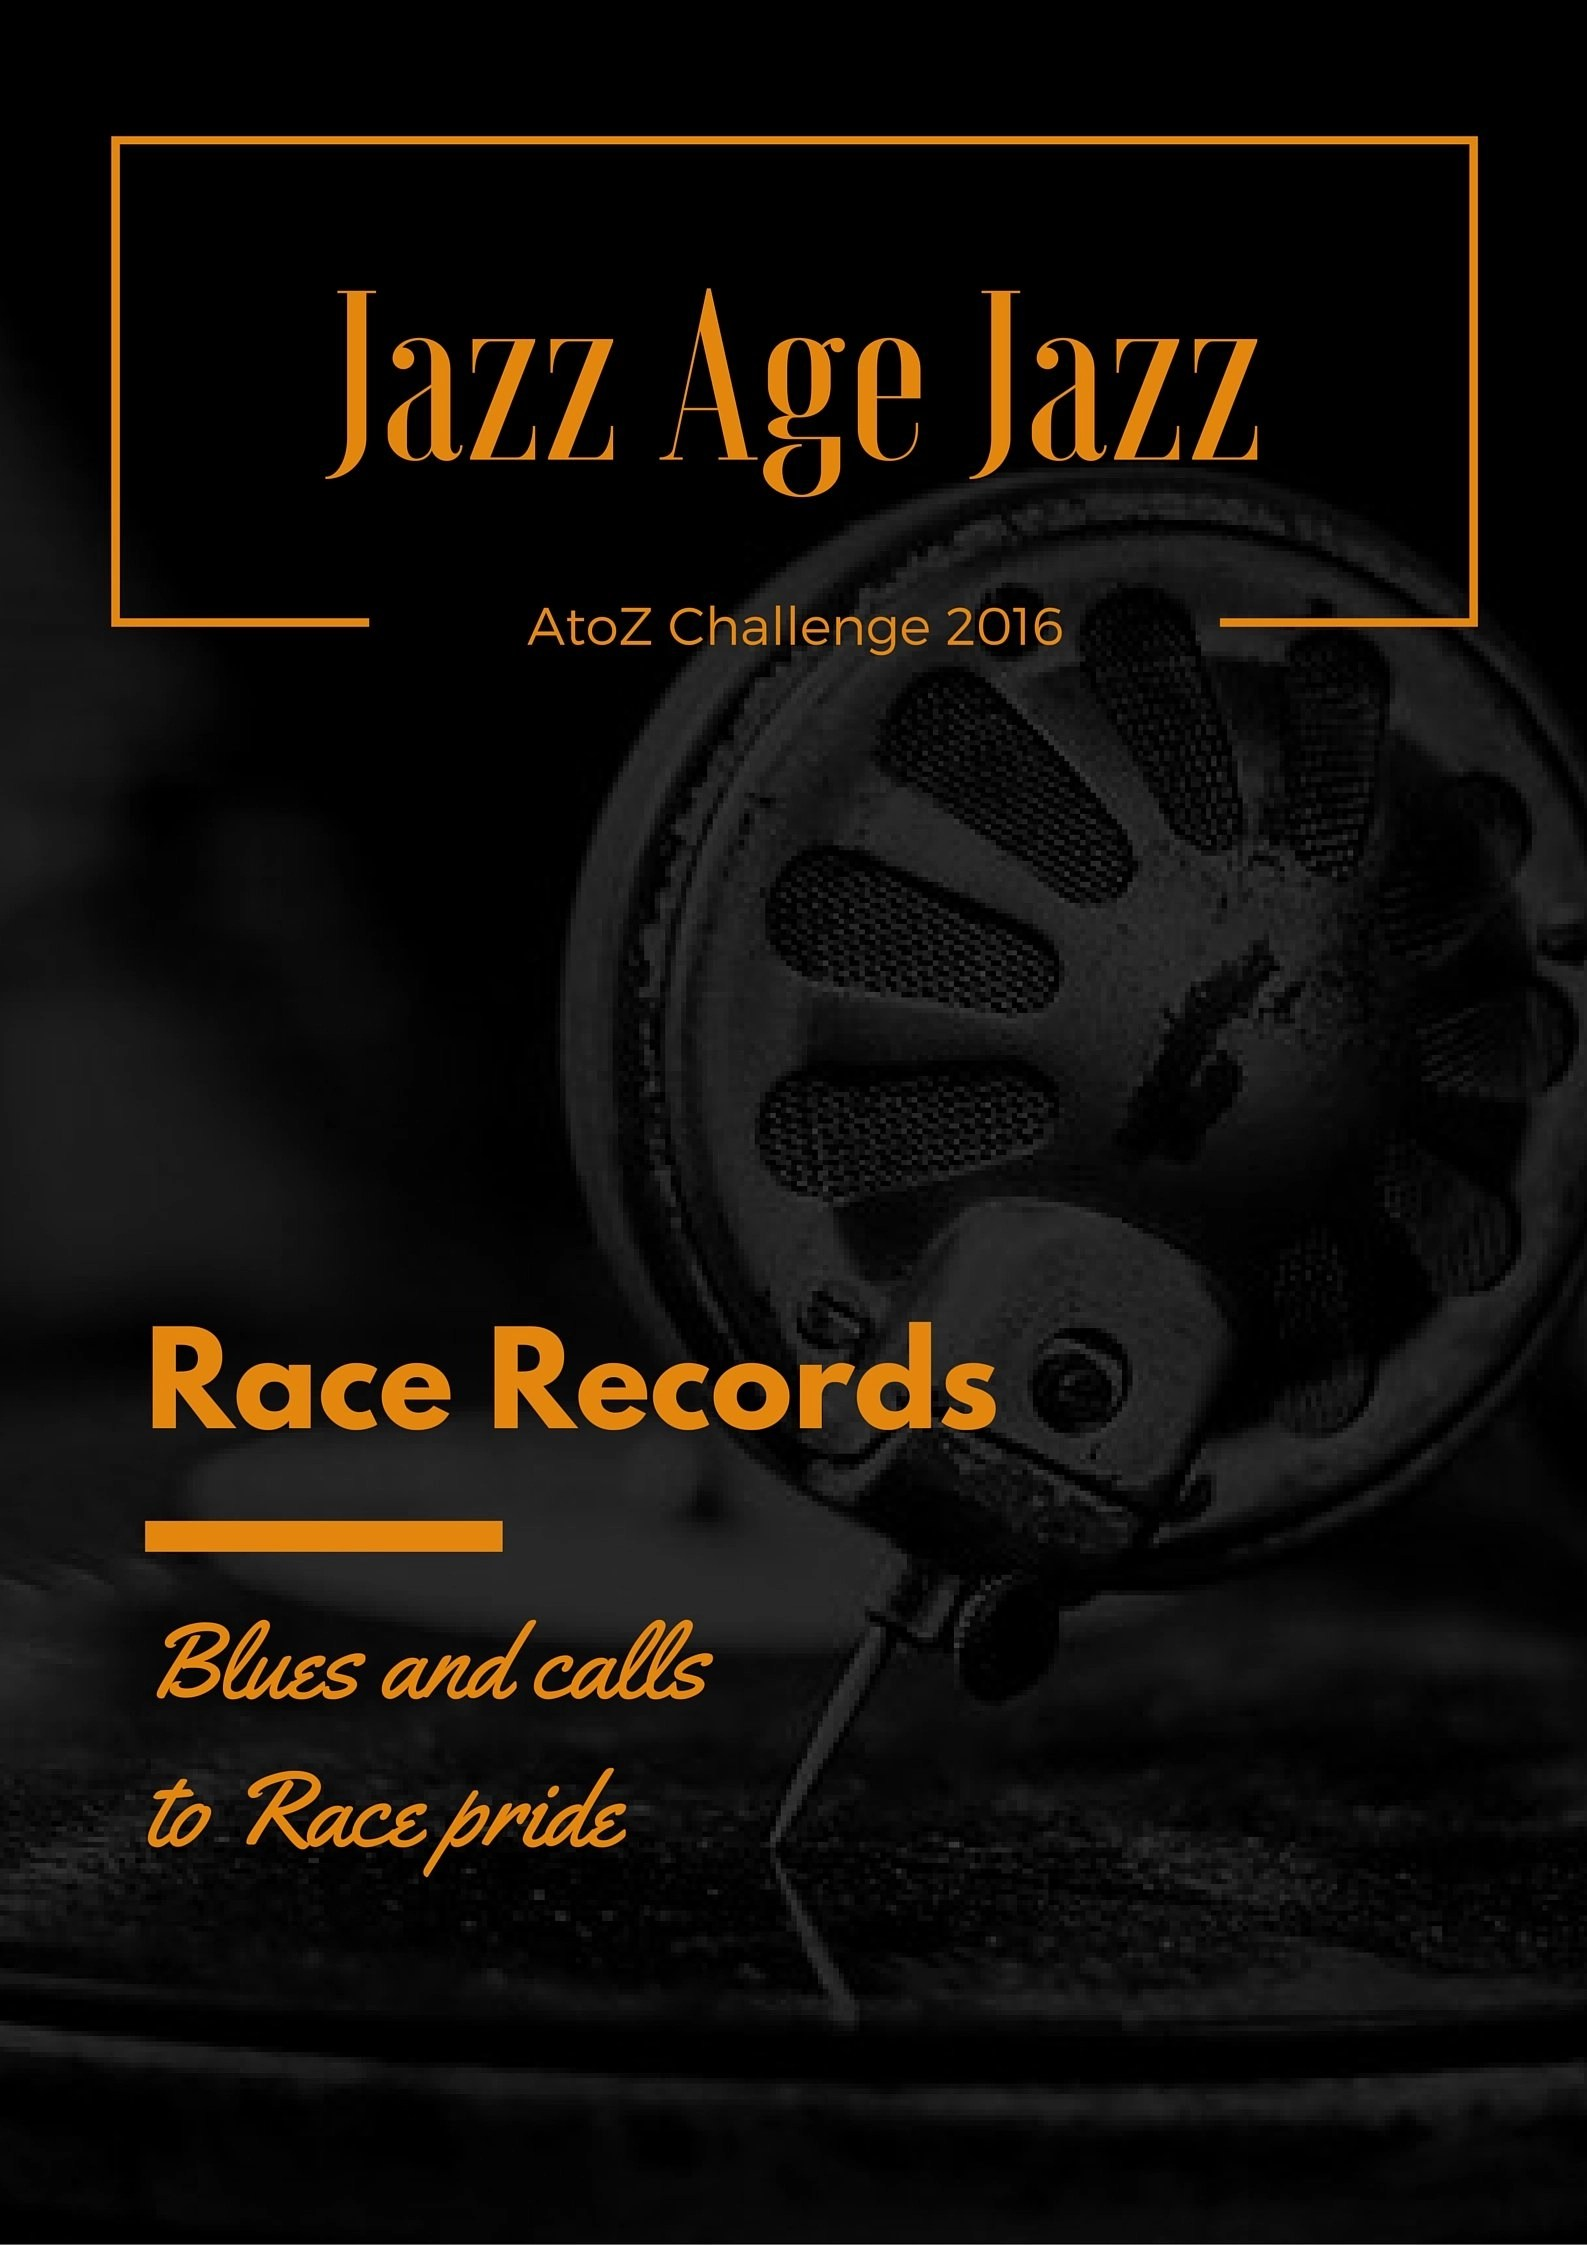 Jazz Age Jazz - Race Records: Blues and call to Race pride